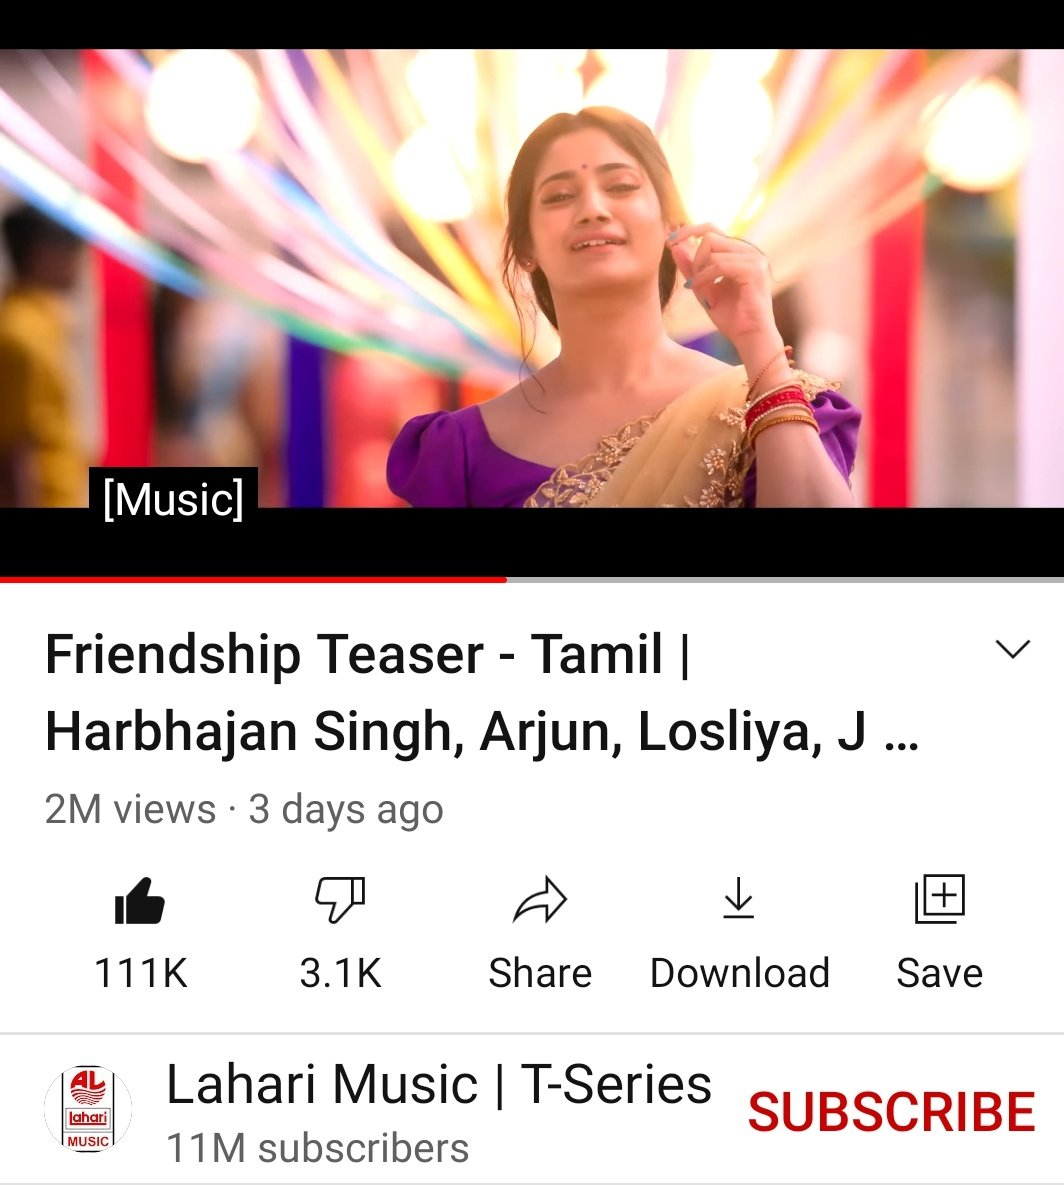 3Day 2 million views 111k likes #friendshipmovieteaser Never judge 💚 you never know what kind of battle they are fighting #Losliya #Friendshipmovie